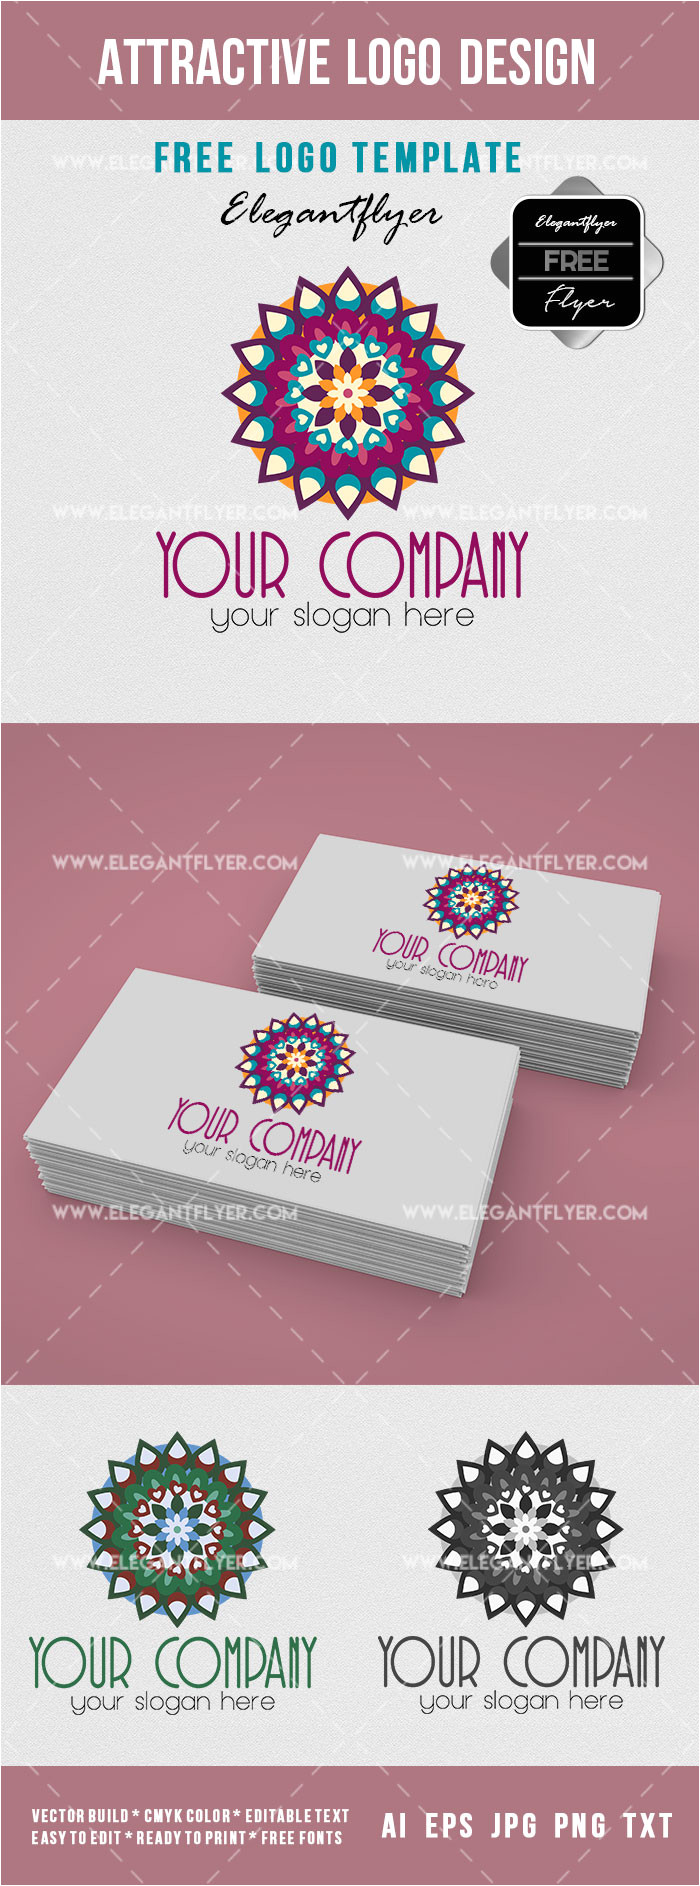 attractive design logotype free logo template